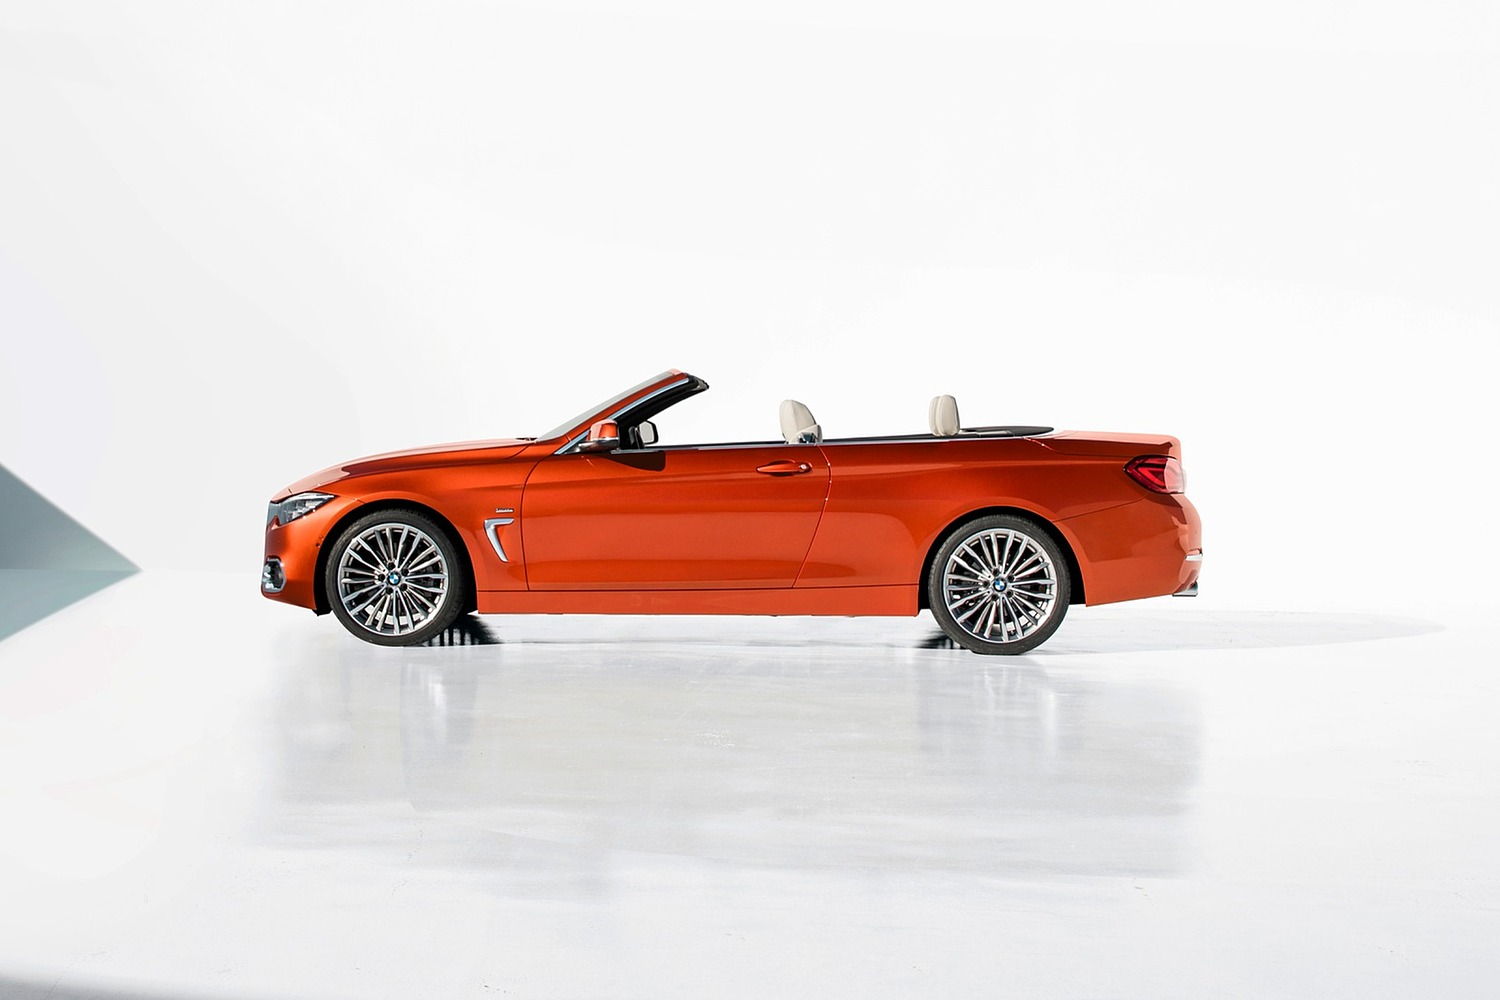 2018 BMW 4 Series 430i SULEV Convertible Exterior. European Model with Executive Package Shown.